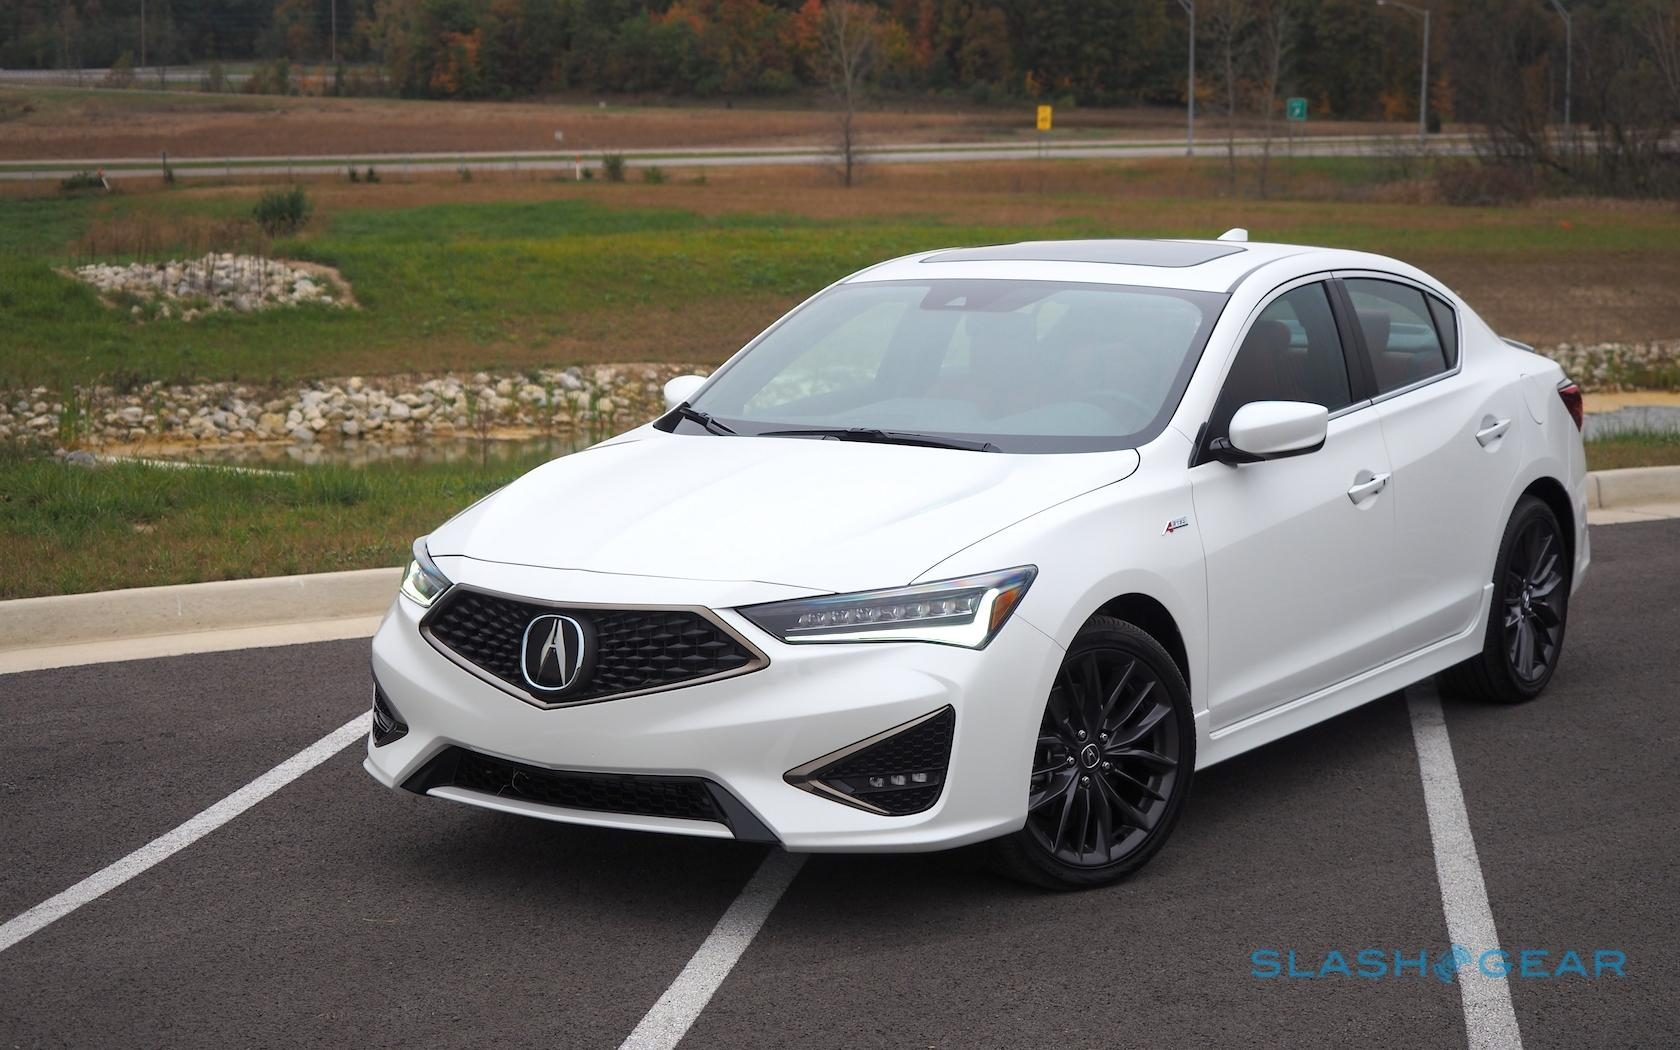 2019 Acura ILX first drive: Distinctively safer - SlashGear